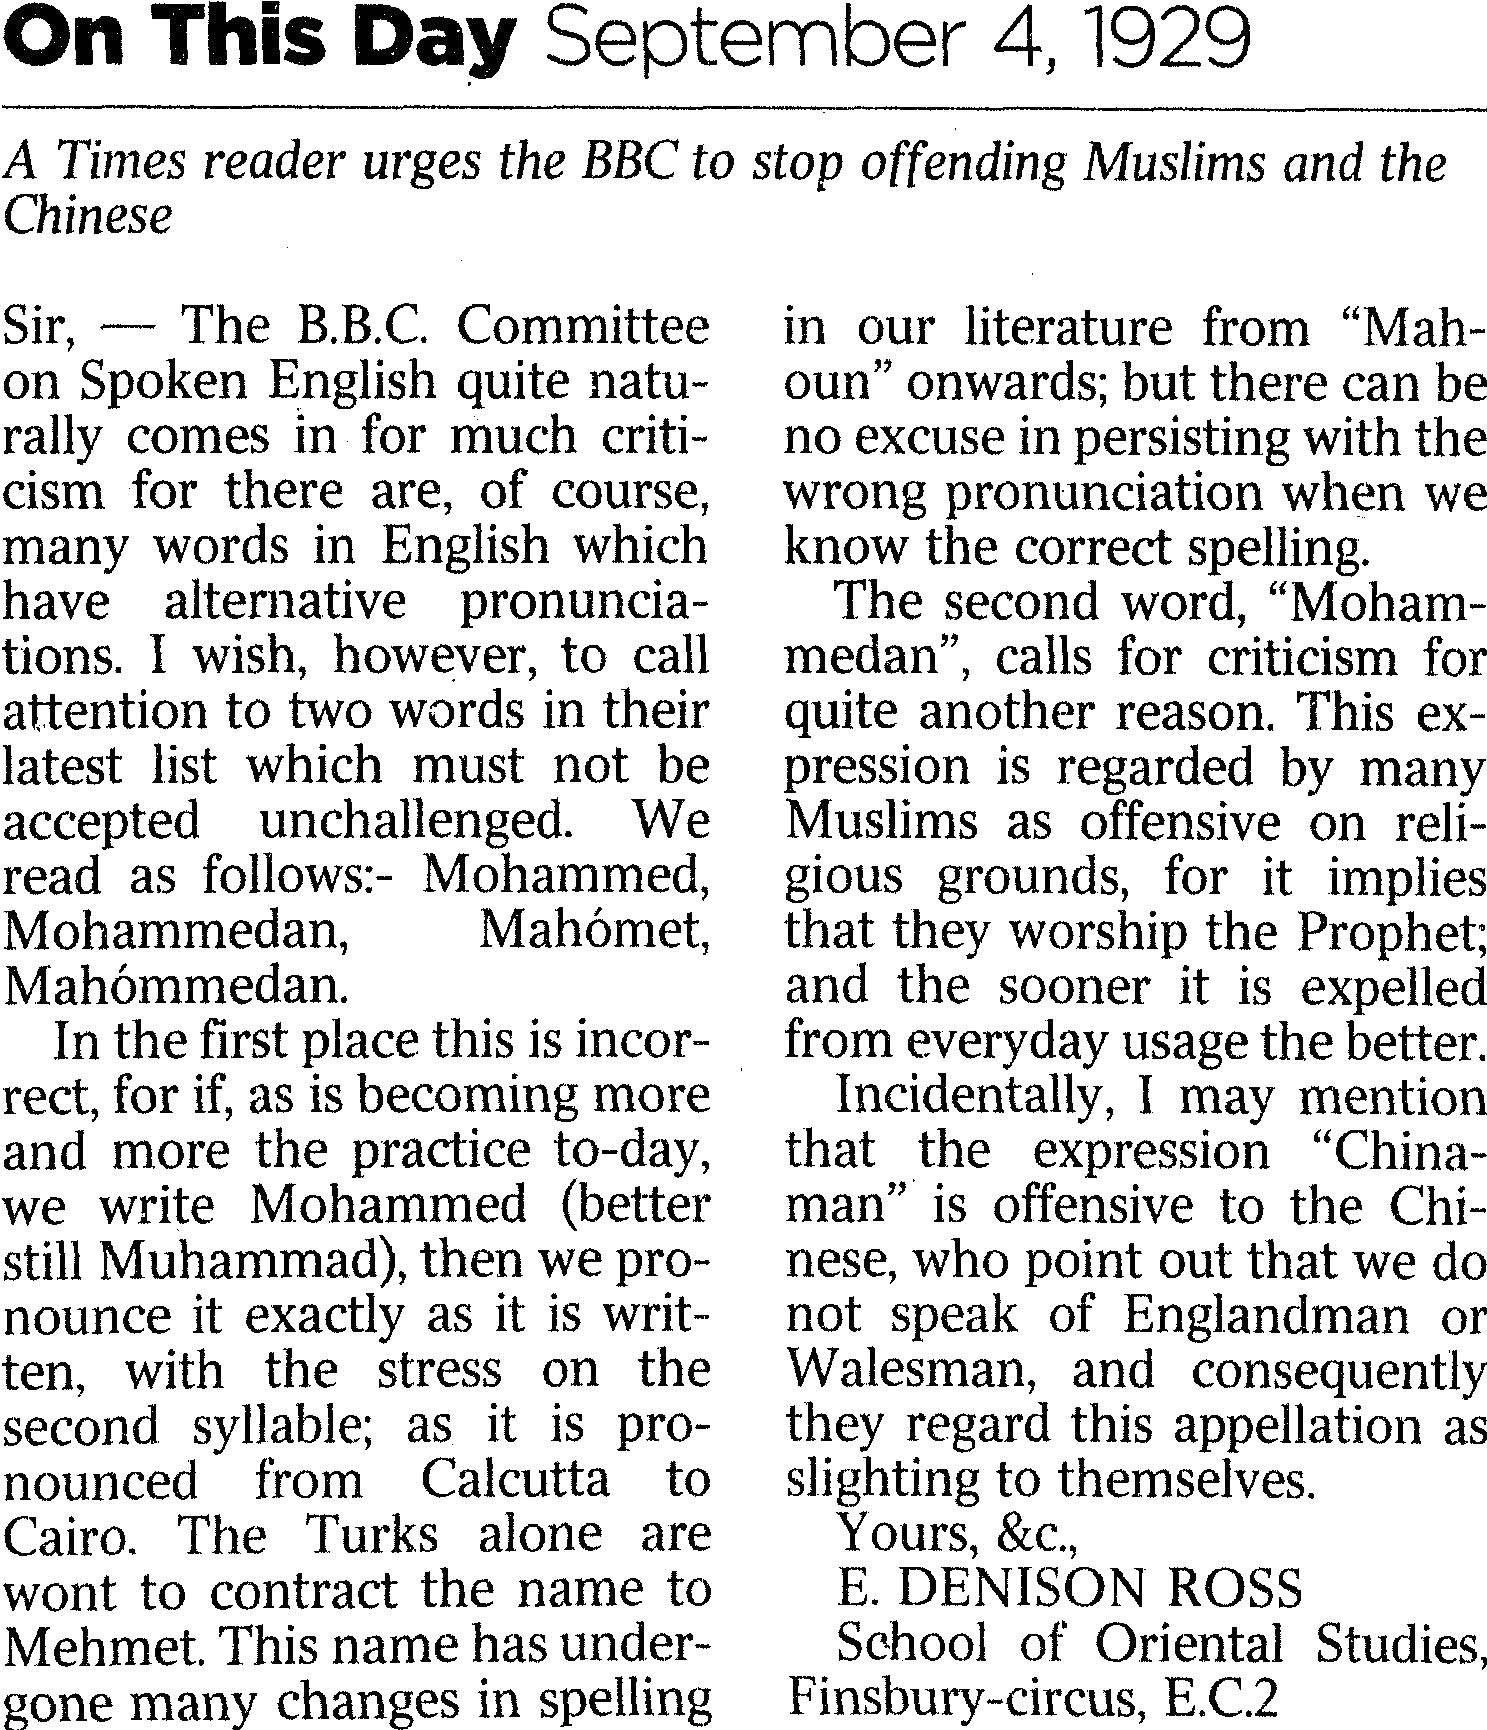 sir denison ross urges the bbc to stop offending muslims and the